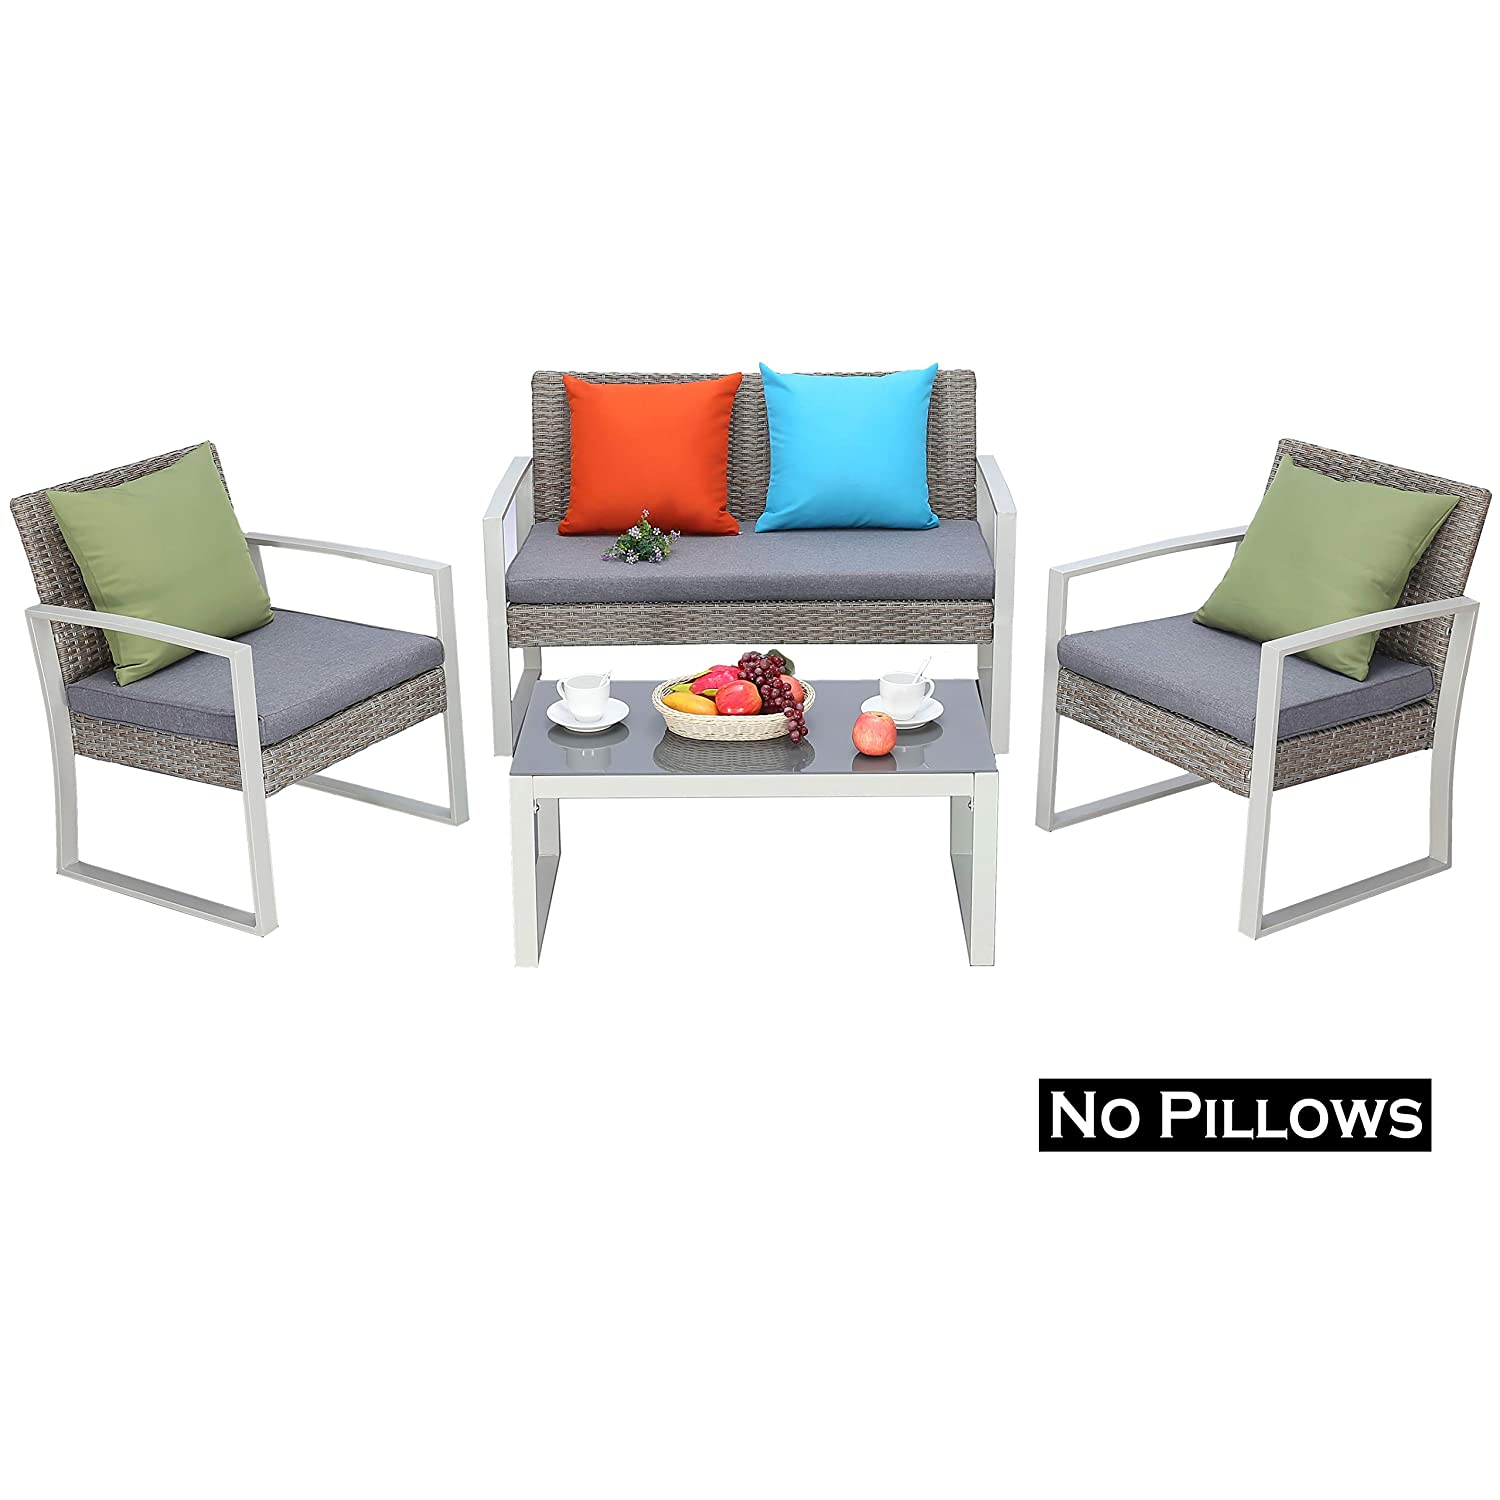 Do4U 4 PCS Outdoor Patio Furniture Conversation Set Cushioned PE Wicker Bistro Table Set with Coffee Table Loveseat 2 Single Sofas, Durable Steel Garden Lawn Dining Set Rattan Chairs 9779-YLW